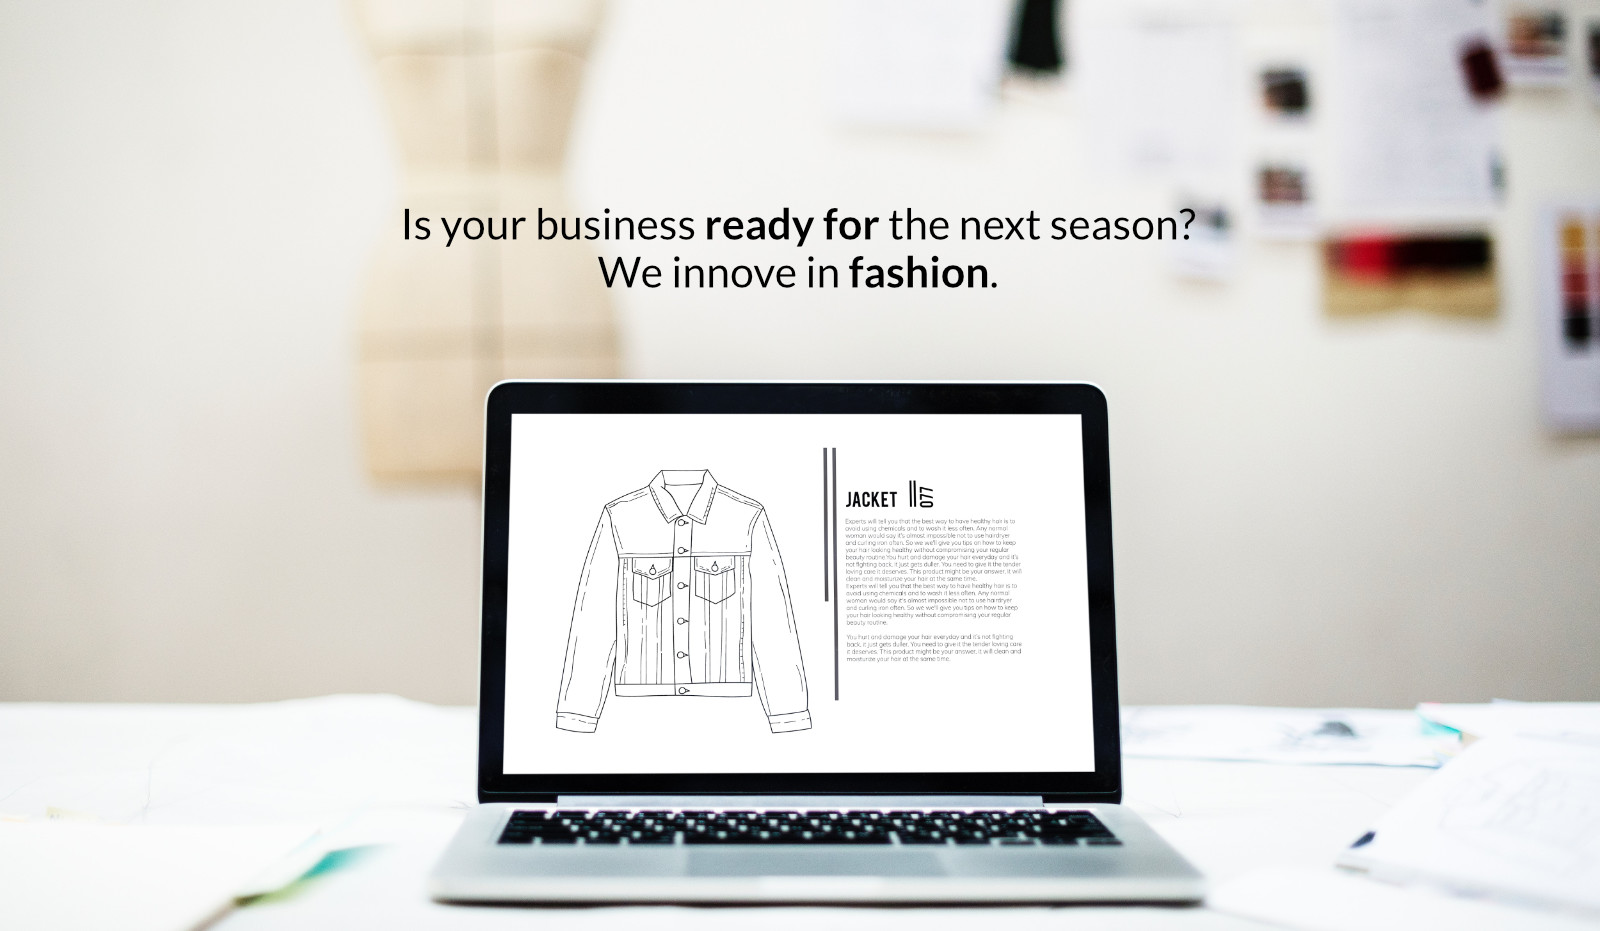 Is your business ready for the next season? We innove in fashion.